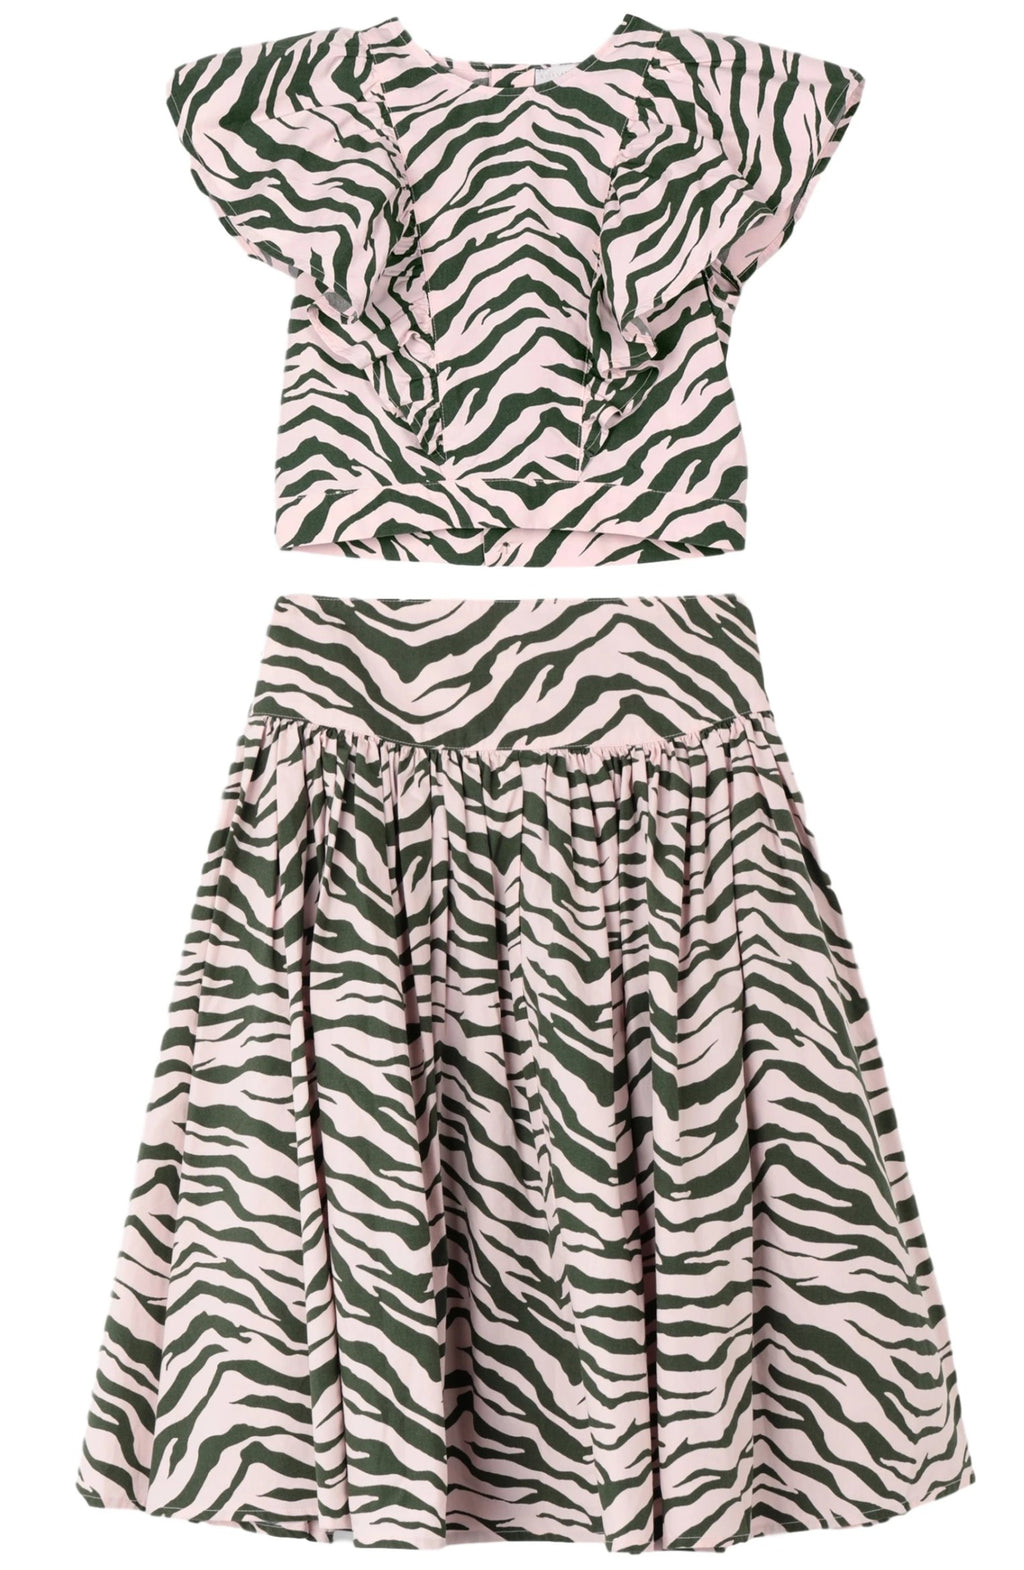 Stella McCartney 2pc Zebra Skirt Set